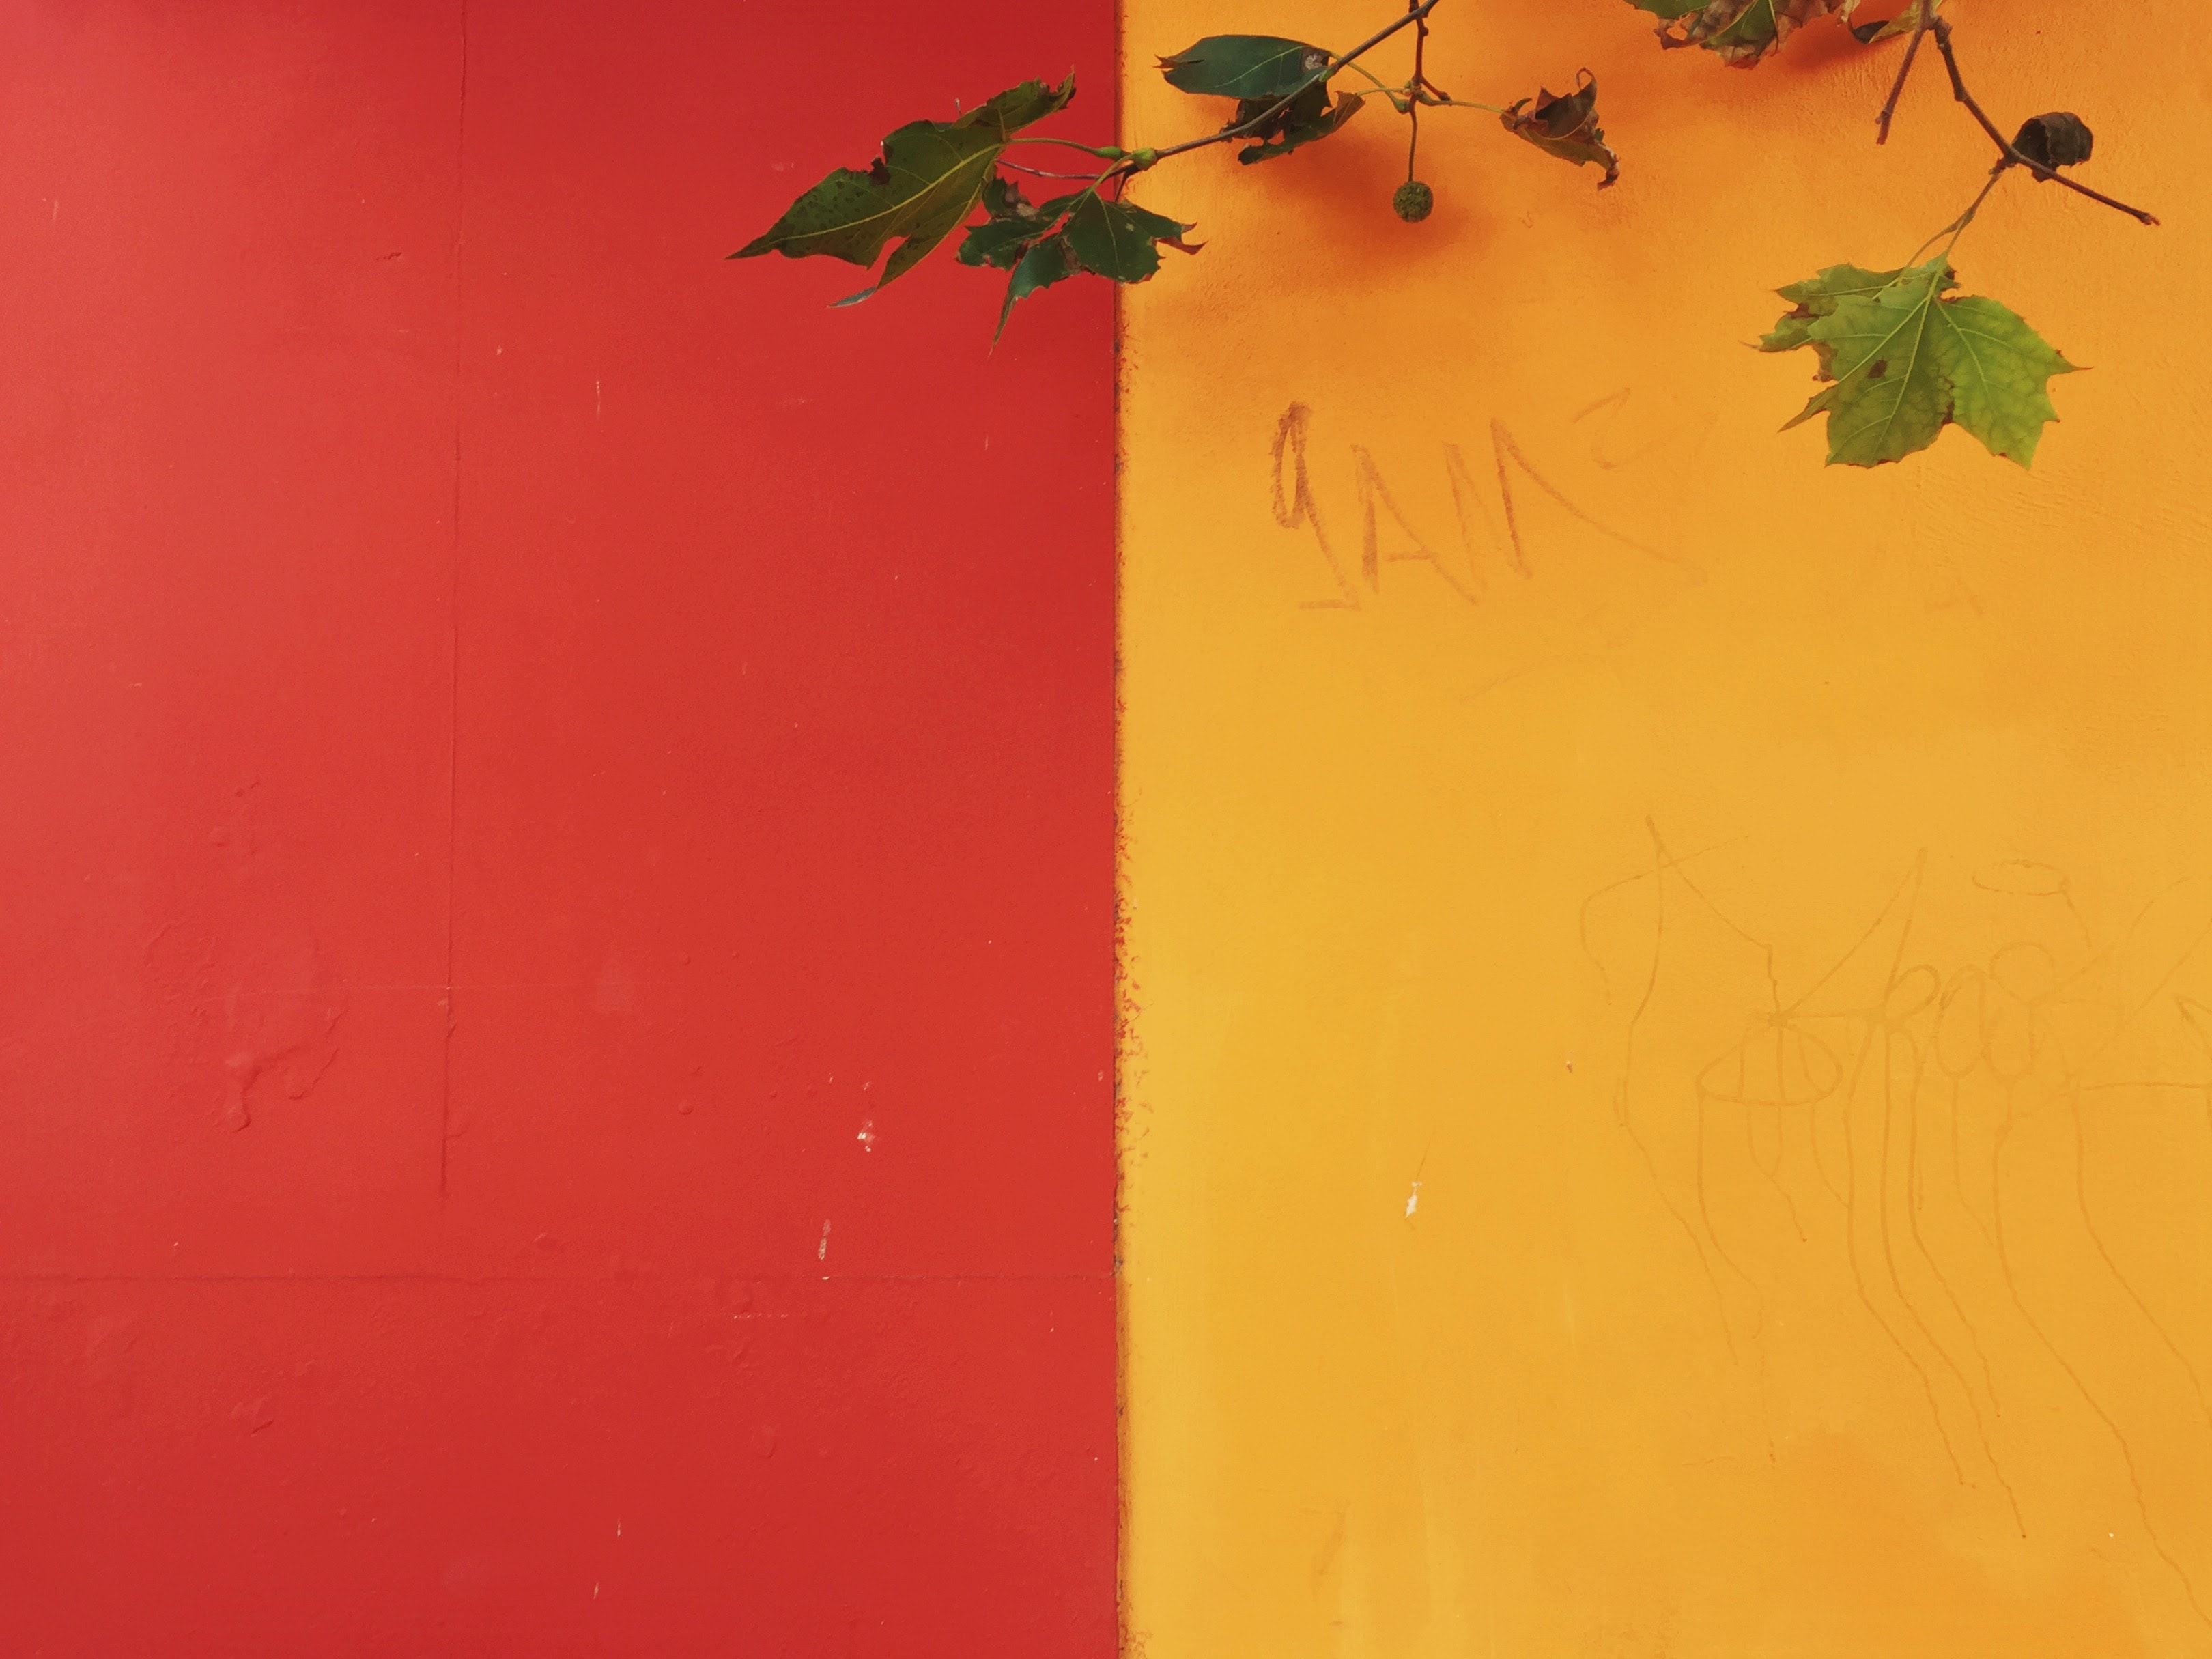 yellow and red painted wall